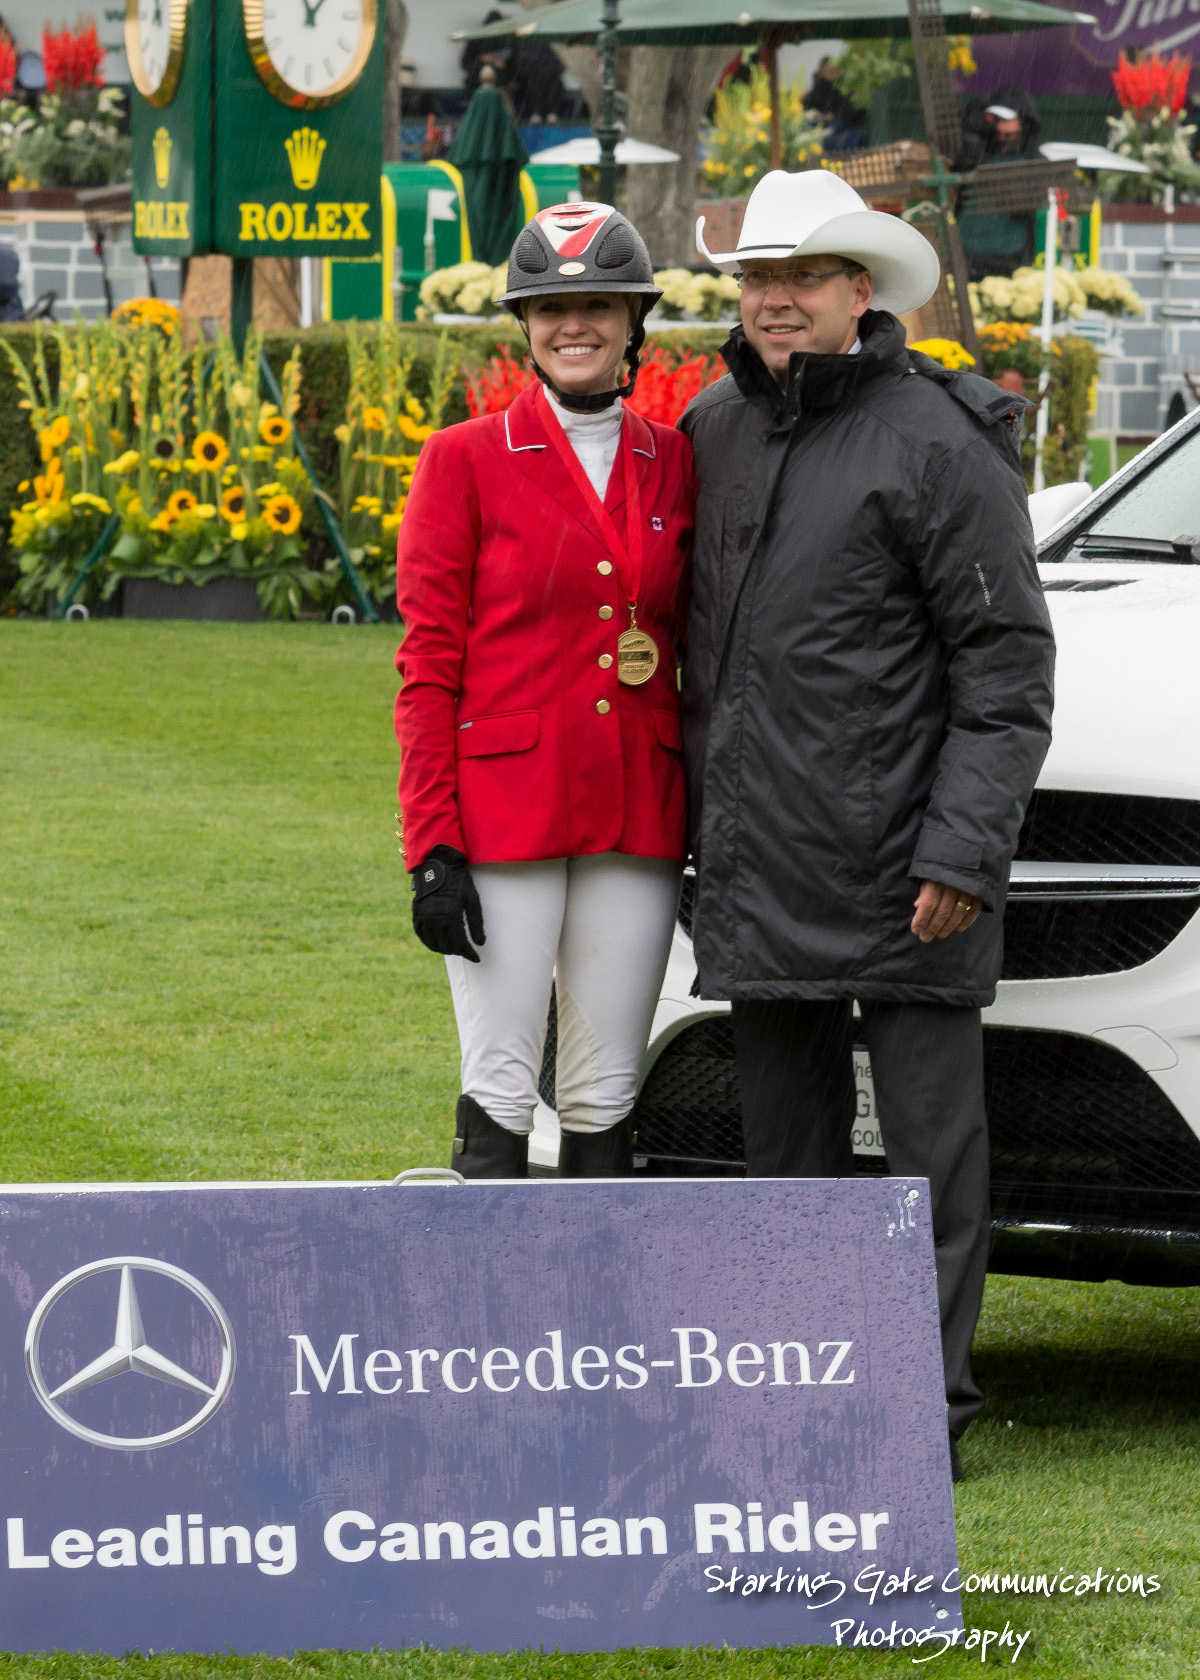 Tiffany foster crowned mercedes benz leading canadian rider for Mercedes benz finance canada